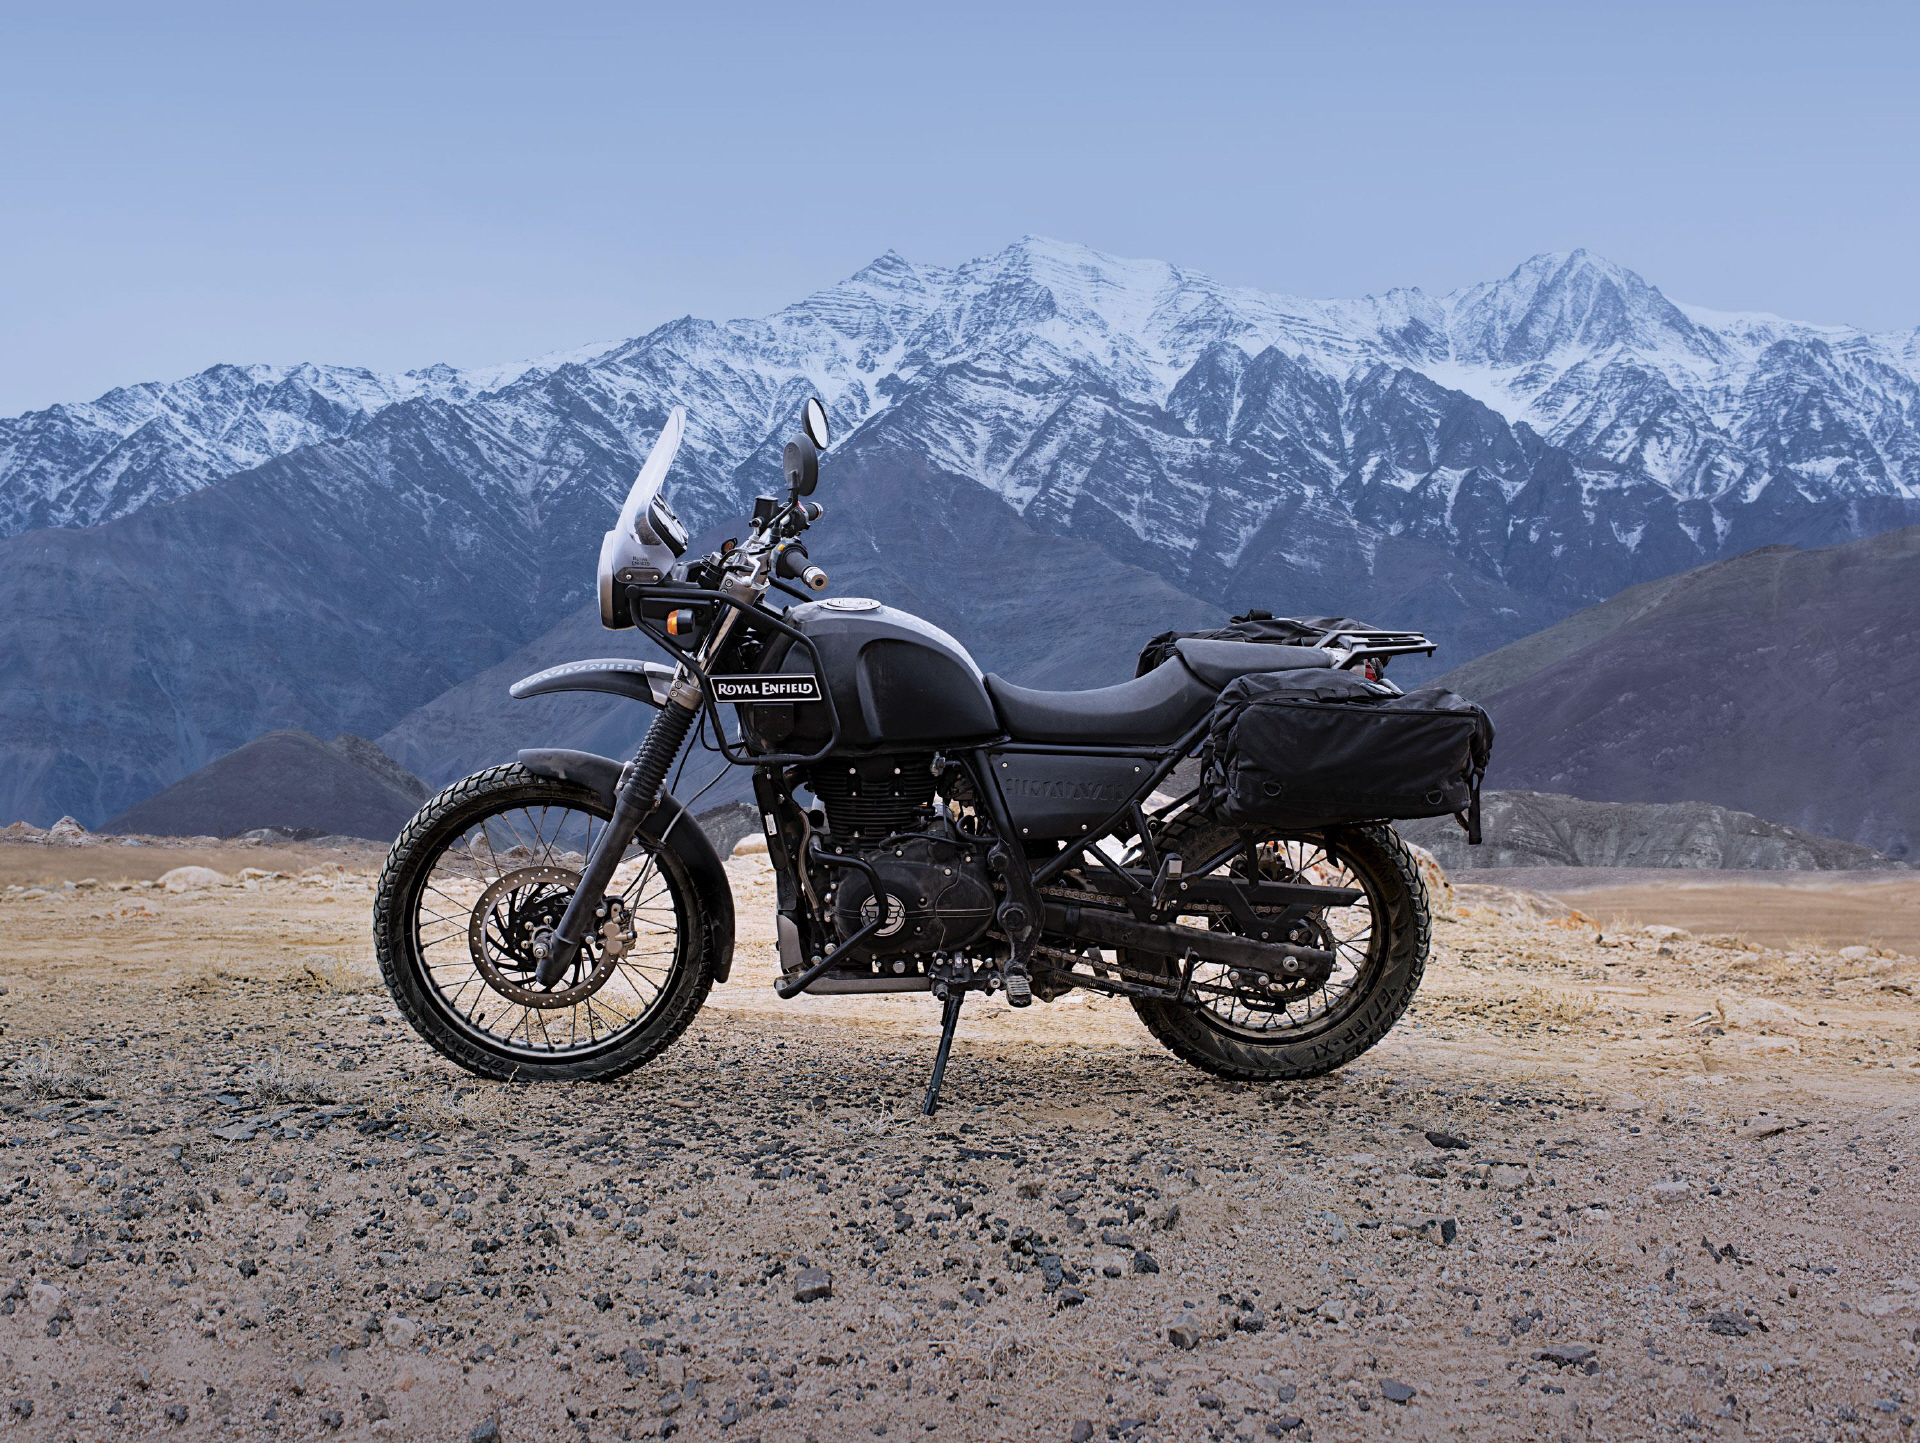 royalenfield_himalayan_102jpg